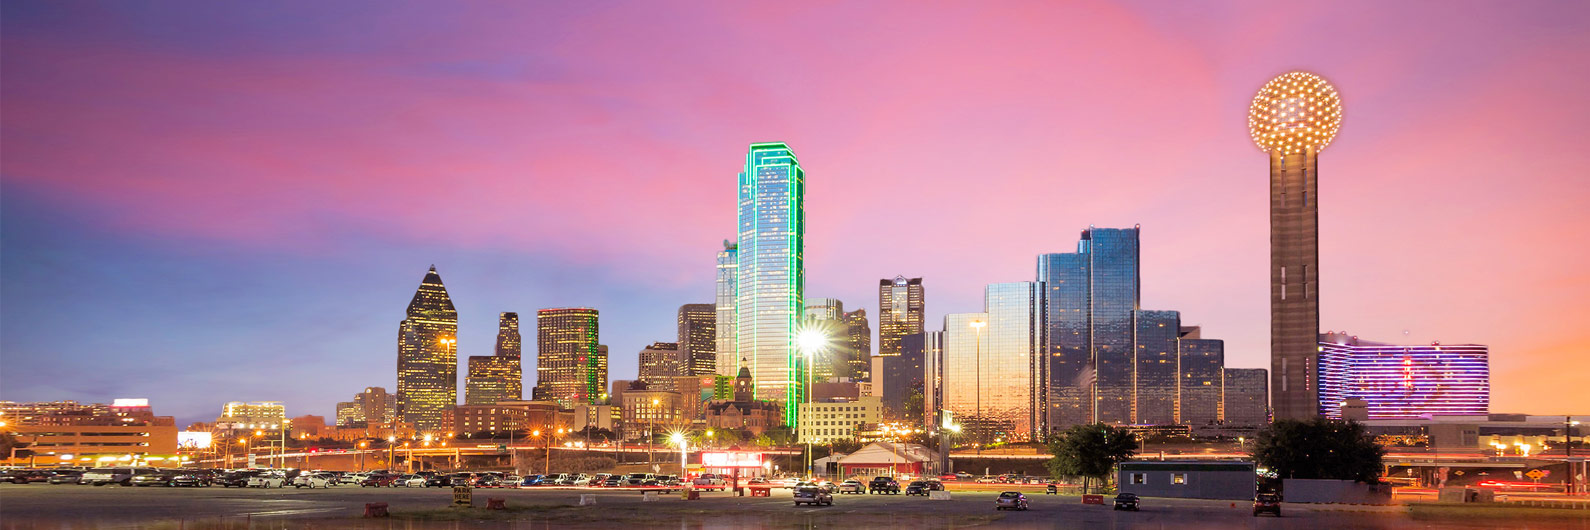 Enterprise Rent-A-Car has many convenient car rental locations throughout Dallas including Dallas/Fort Worth International (DFW) or Love Field (DAL) Airports.